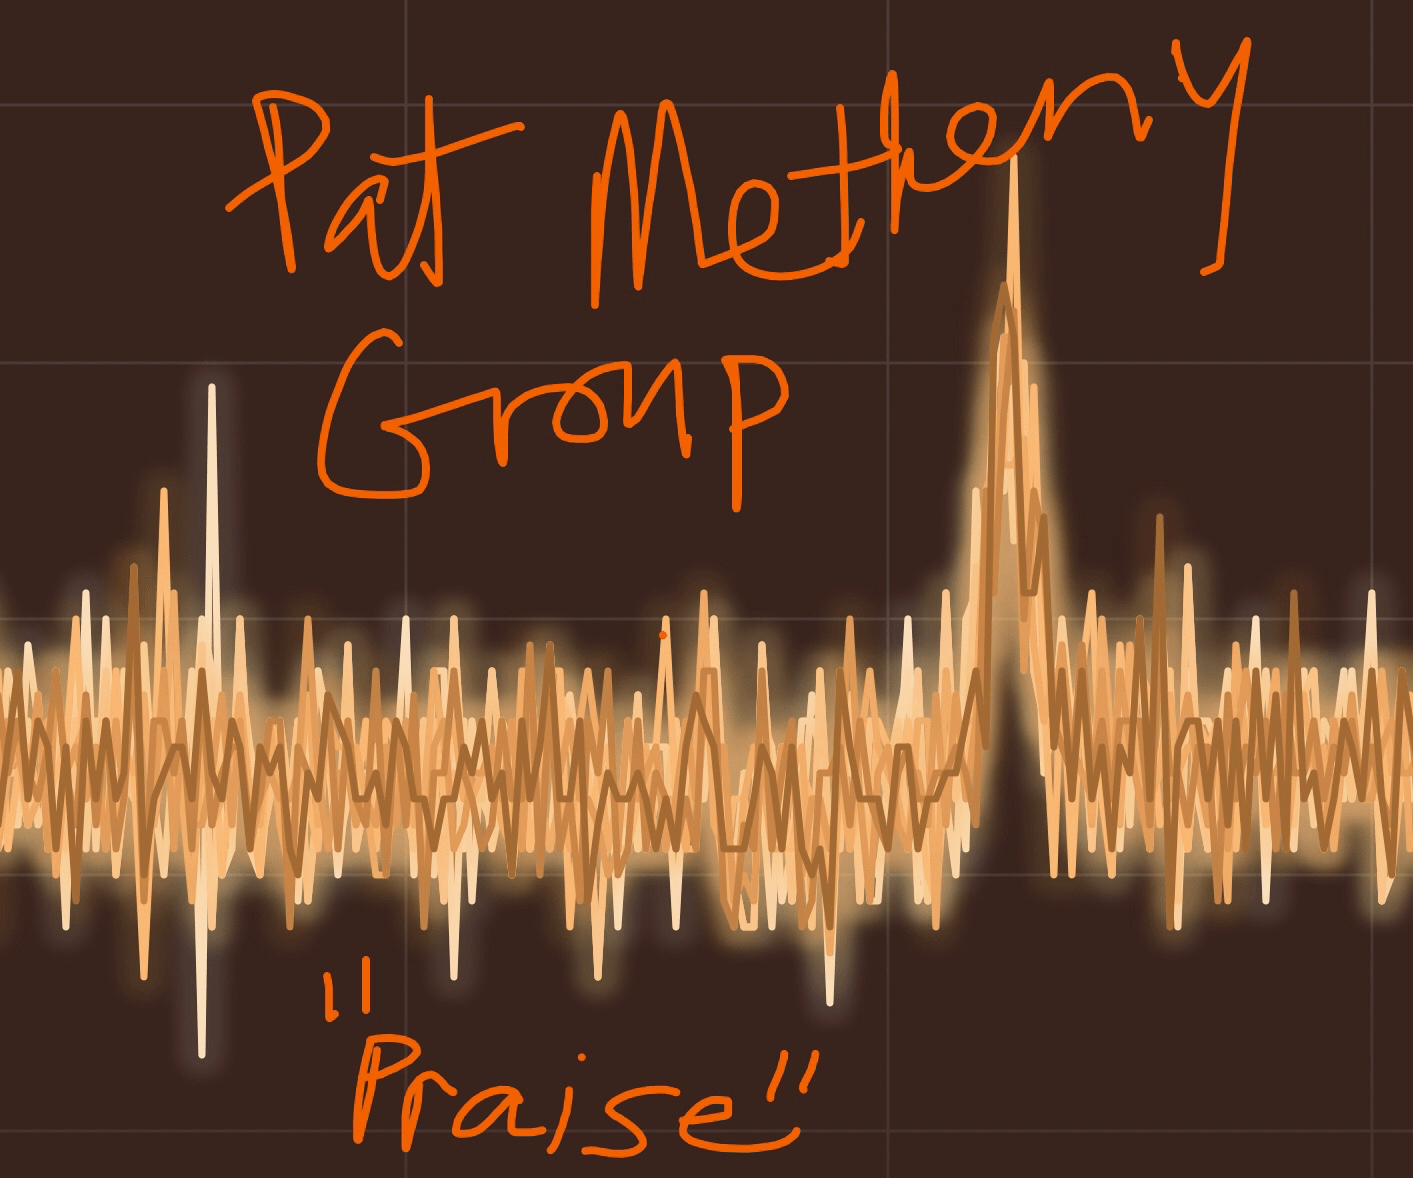 the tempo of Pat Metheny and Lyle Mays